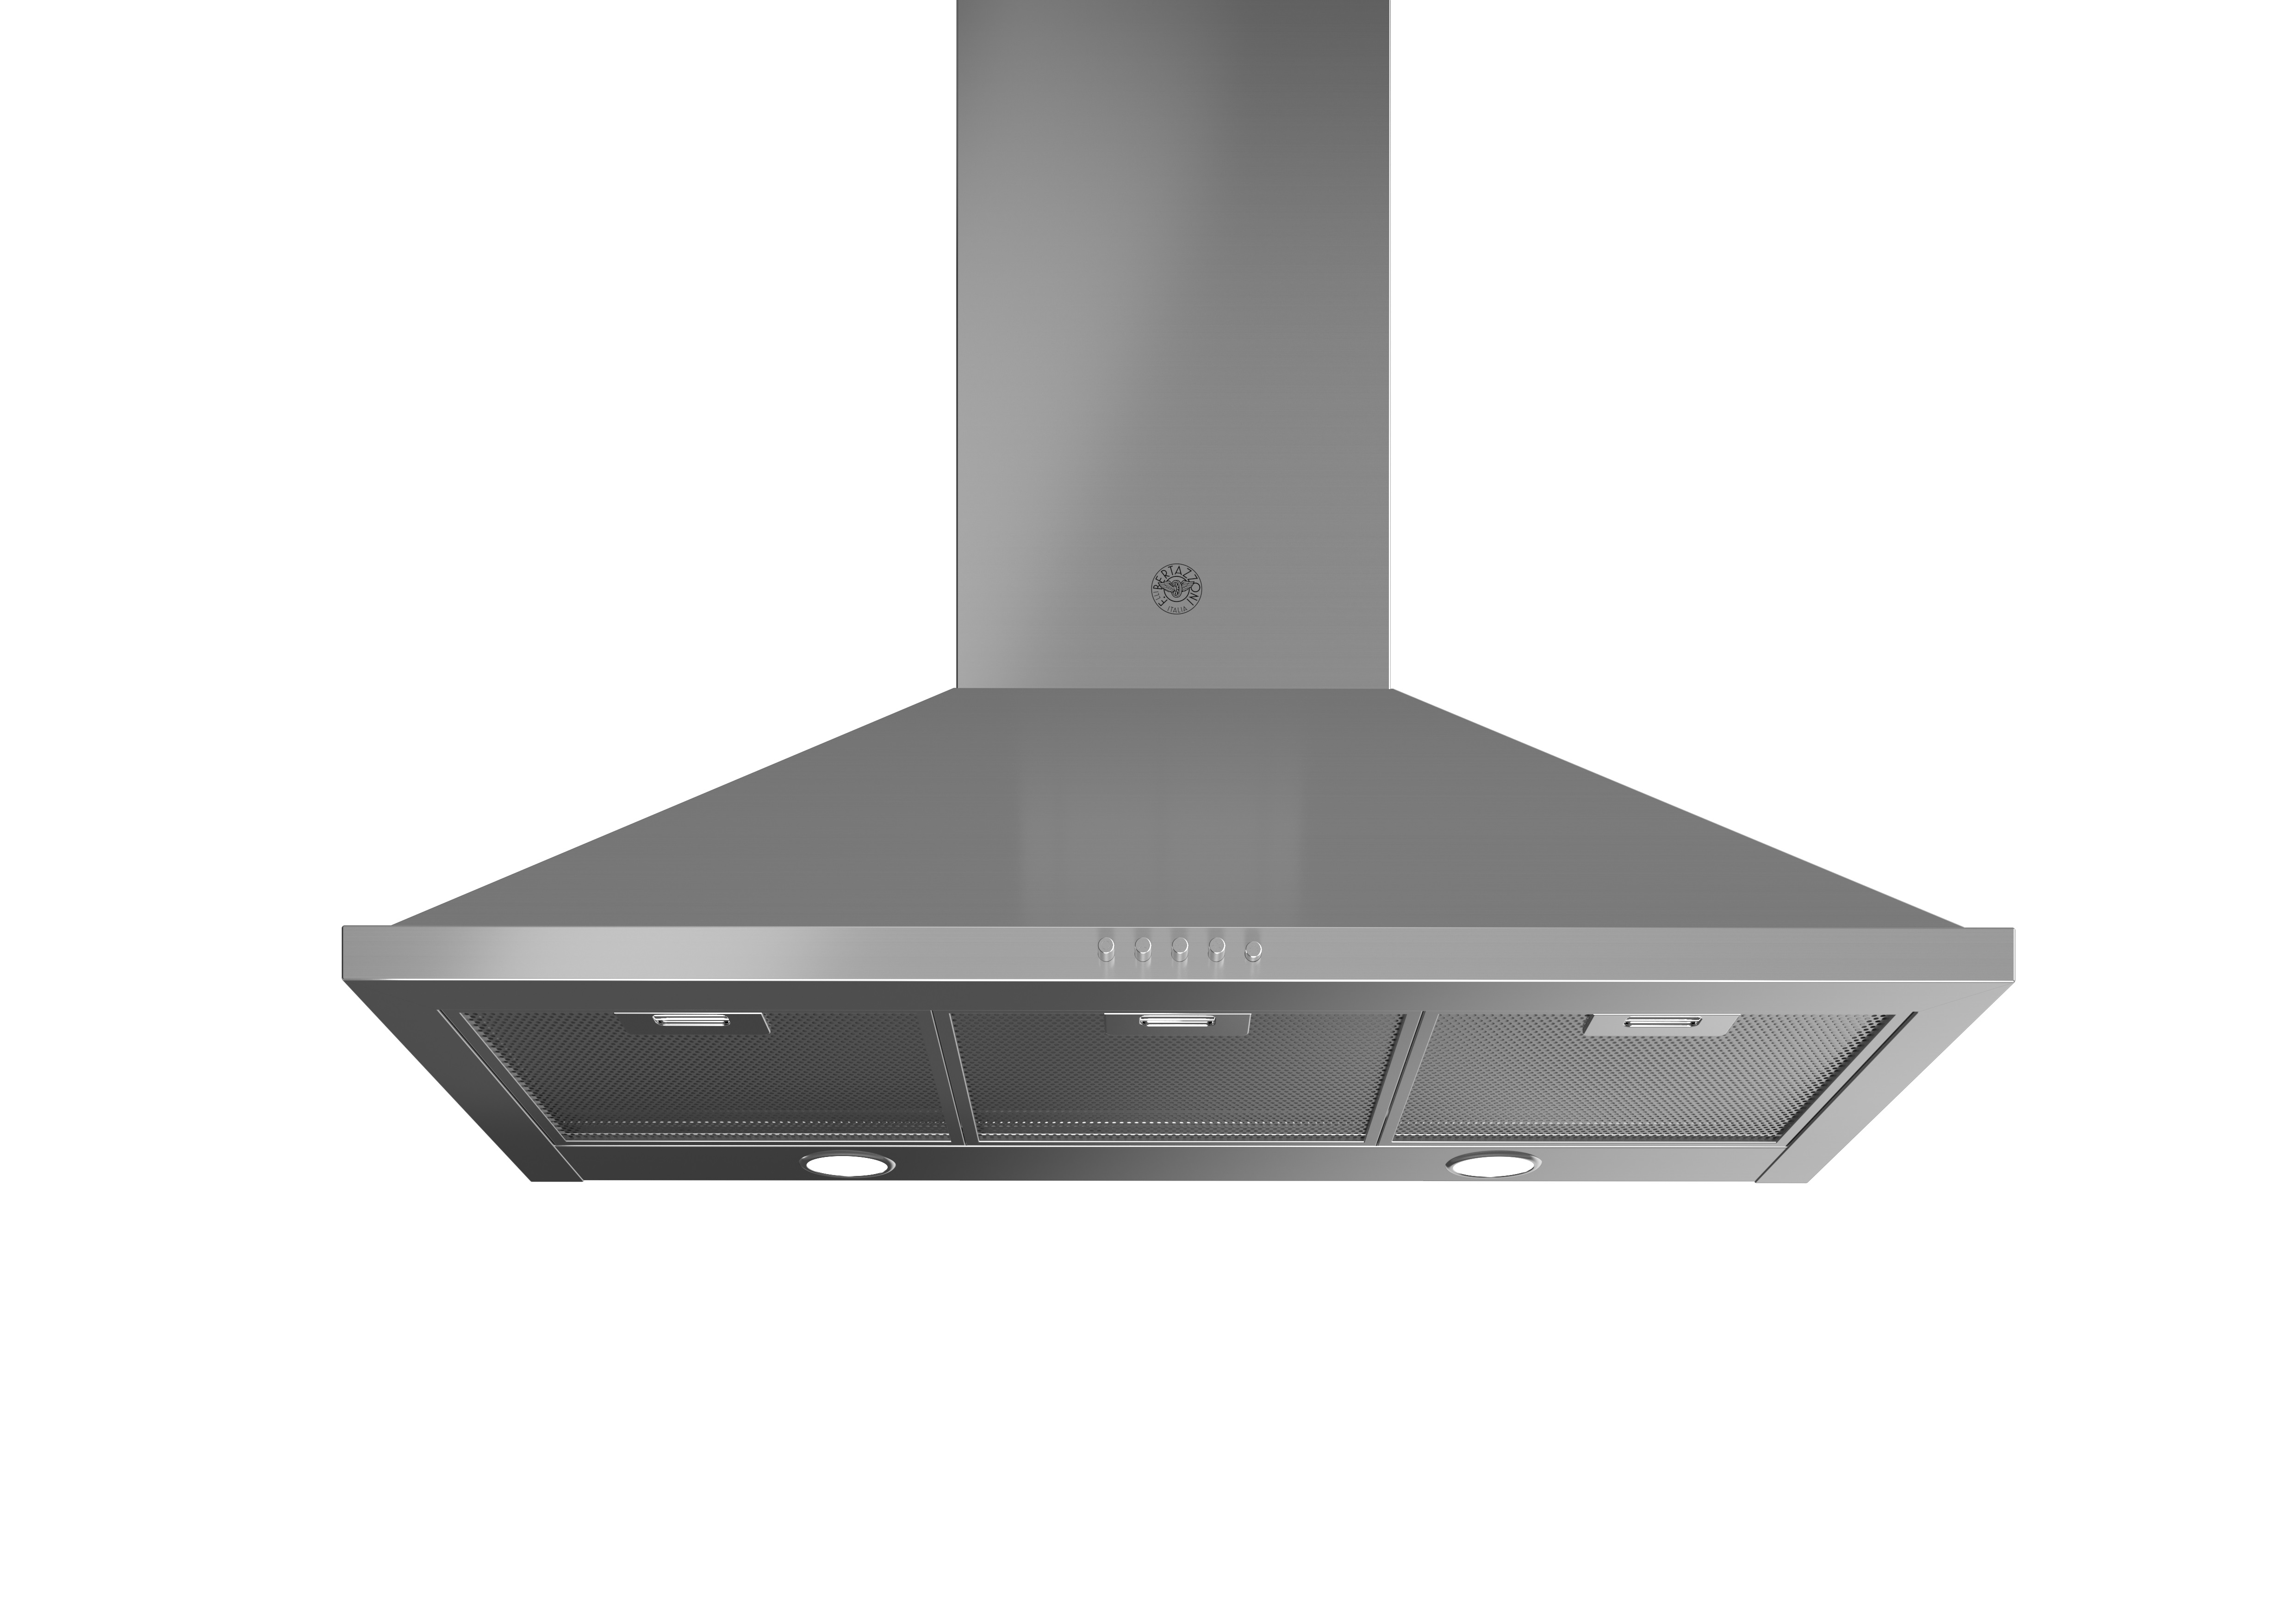 Bertazzoni Range hood KCH36XV in Stainless Steel color showcased by Corbeil Electro Store